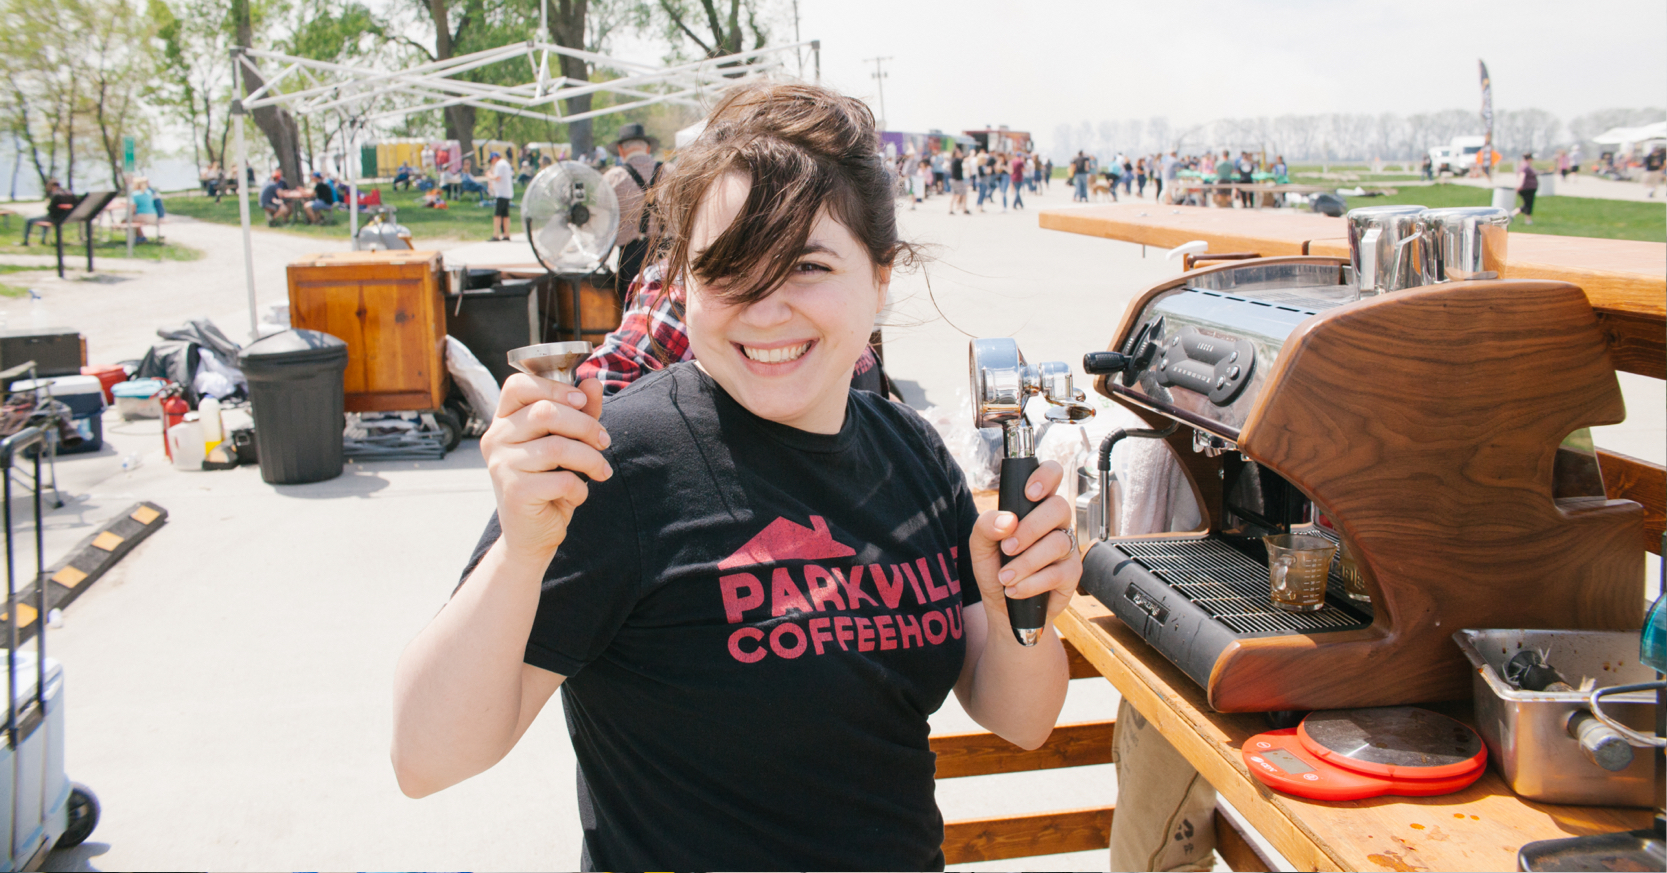 Parkville Coffee at Brewfest 2019